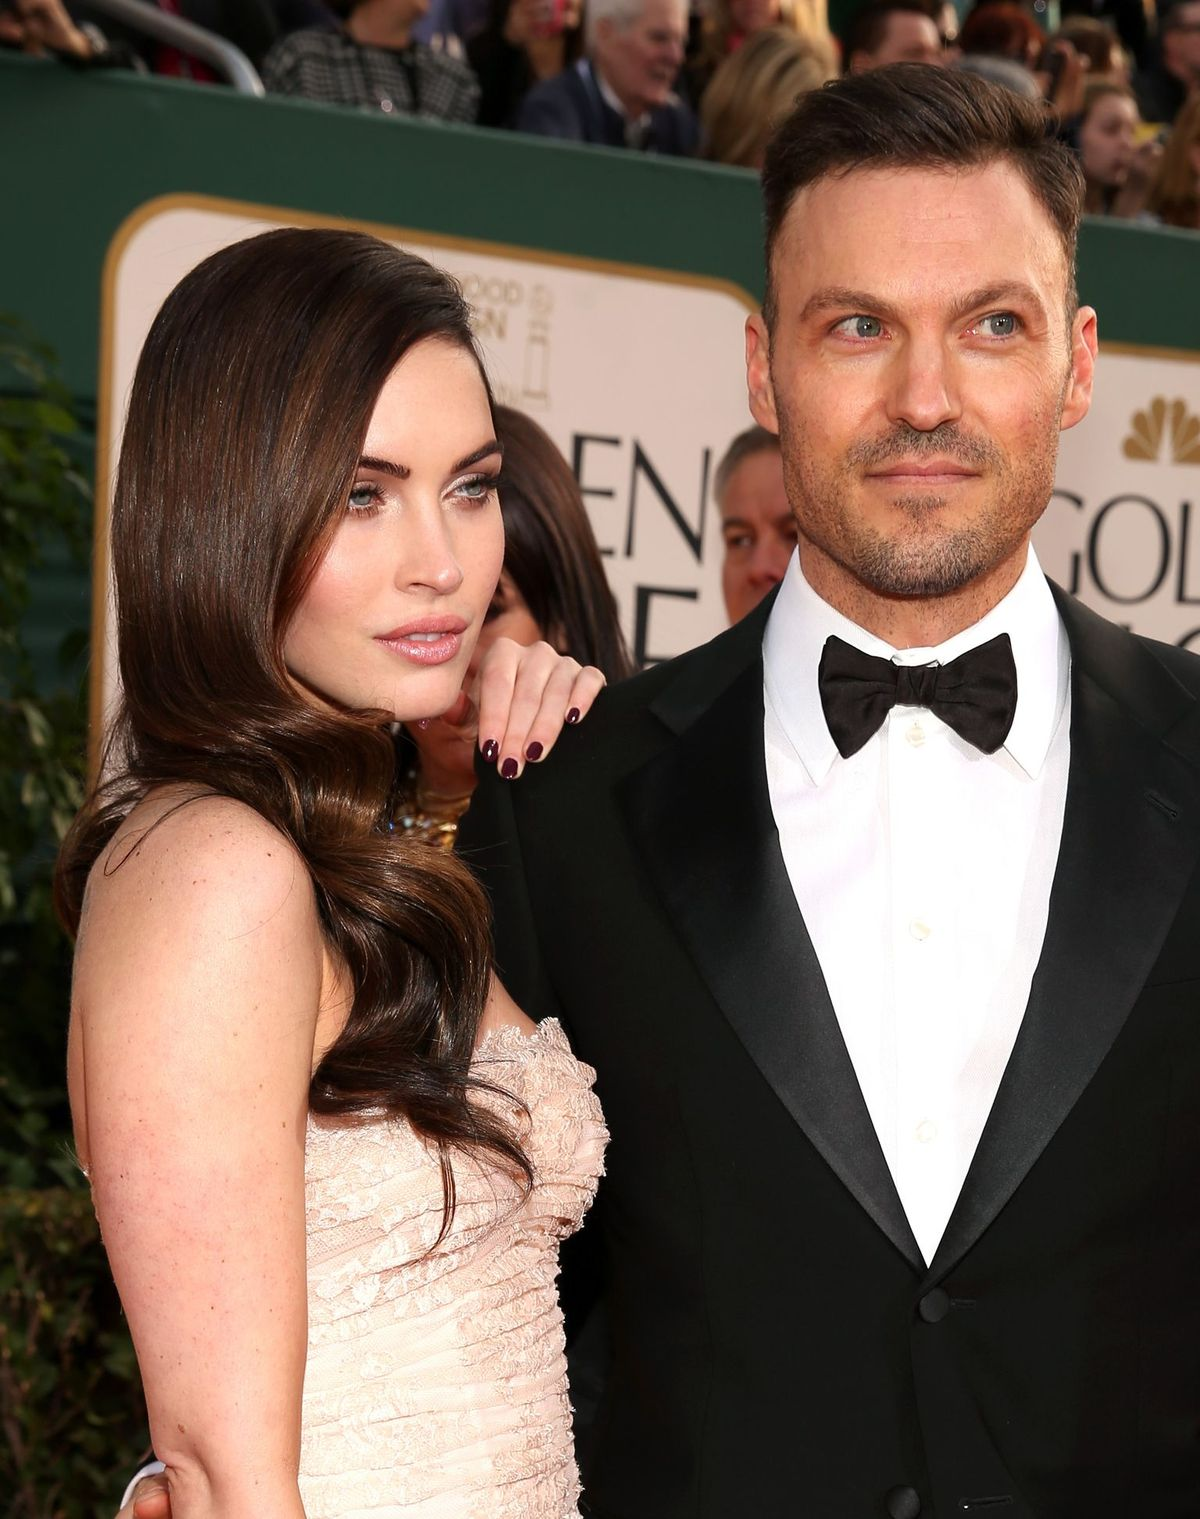 Megan Fox and Brian Austin Green at the 70th Annual Golden Globe Awards on January 13, 2013 | Photo: Christopher Polk/NBC/NBCUniversal/Getty Images